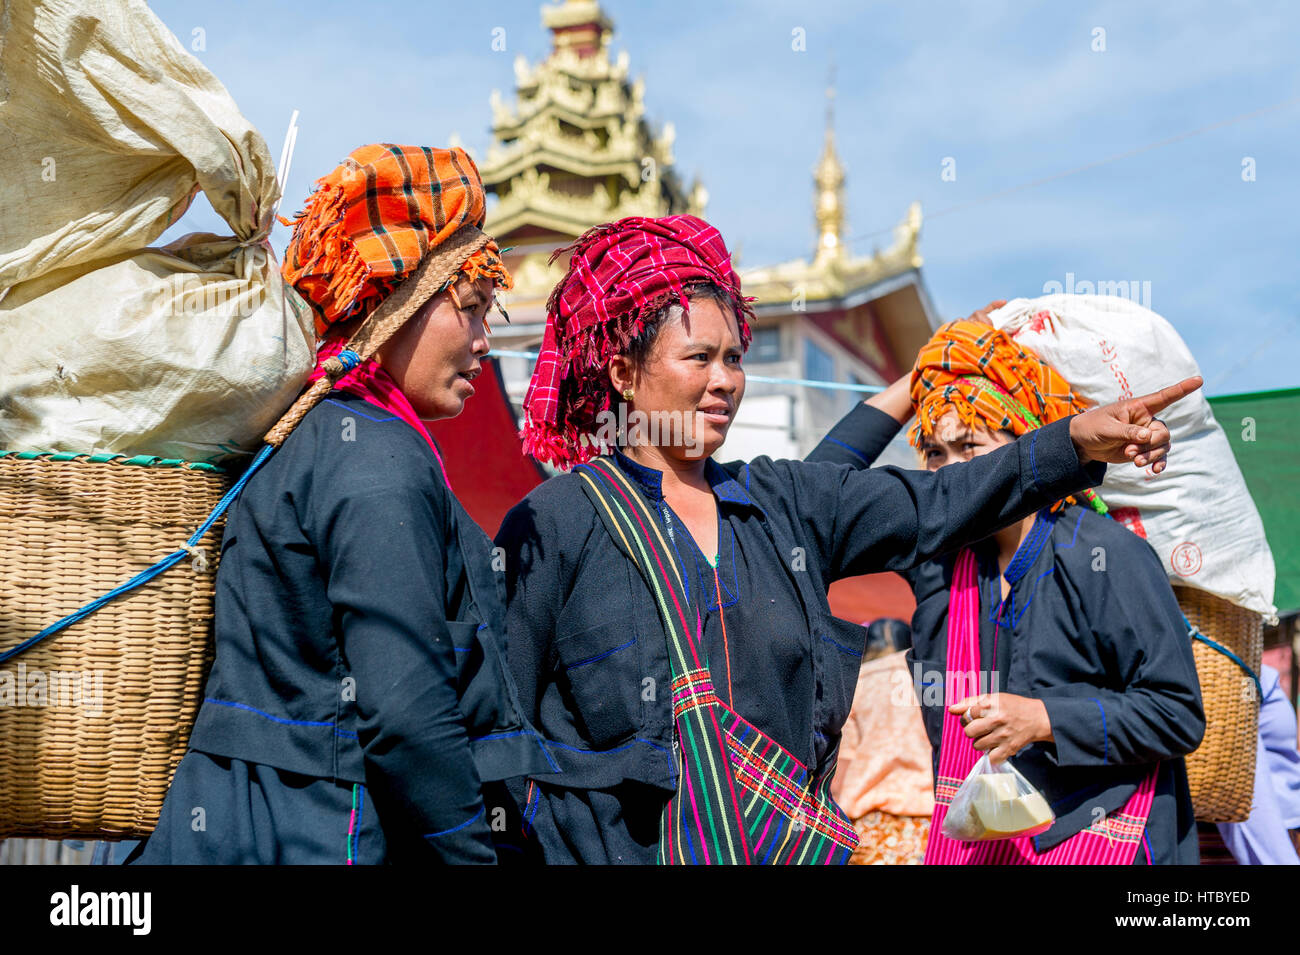 Myanmar (ex Birmanie). Inle lake. Shan state. Market day in the village. Women of the PA-O ethnicity - Stock Image